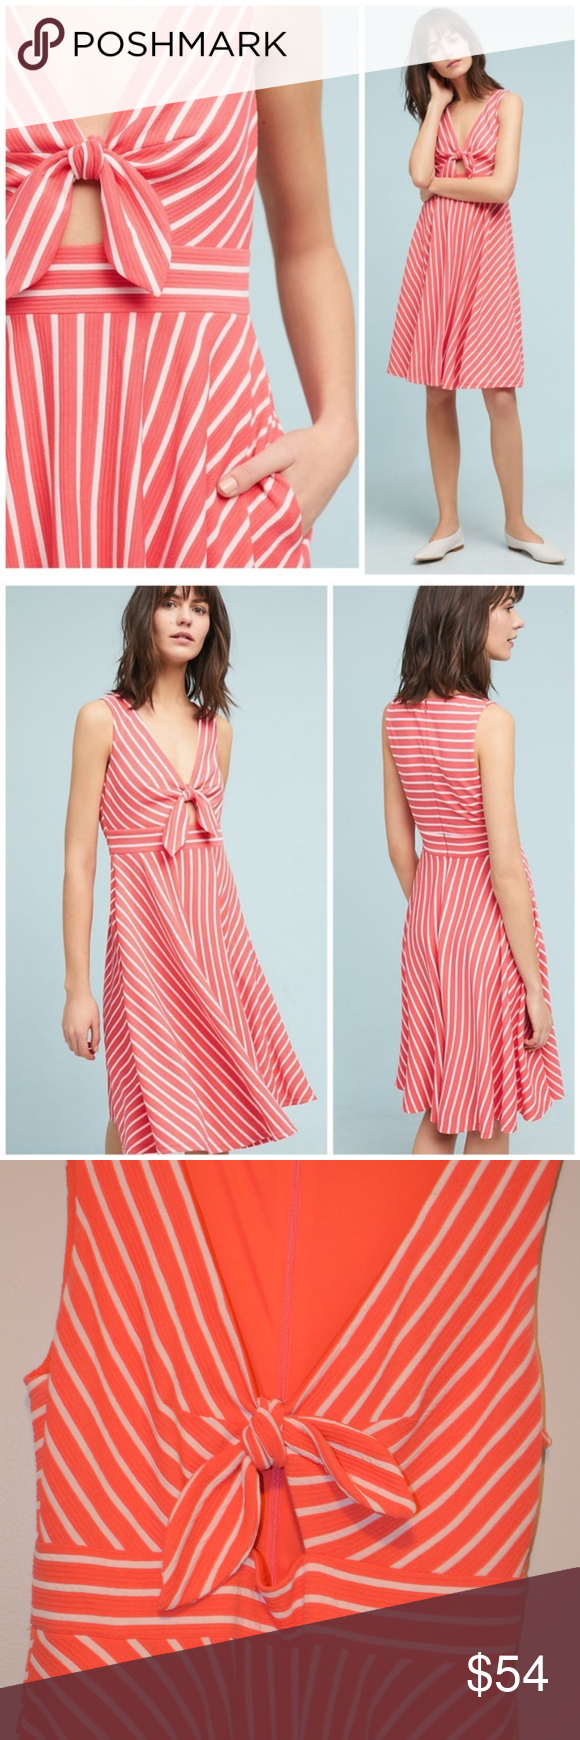 f318c5248490 Anthropologie Hutch April Keyhole Dress Anthropologie Hutch April Keyhole  Dress This coral and white stripe dress is such a dream and PERFECT for  summer!